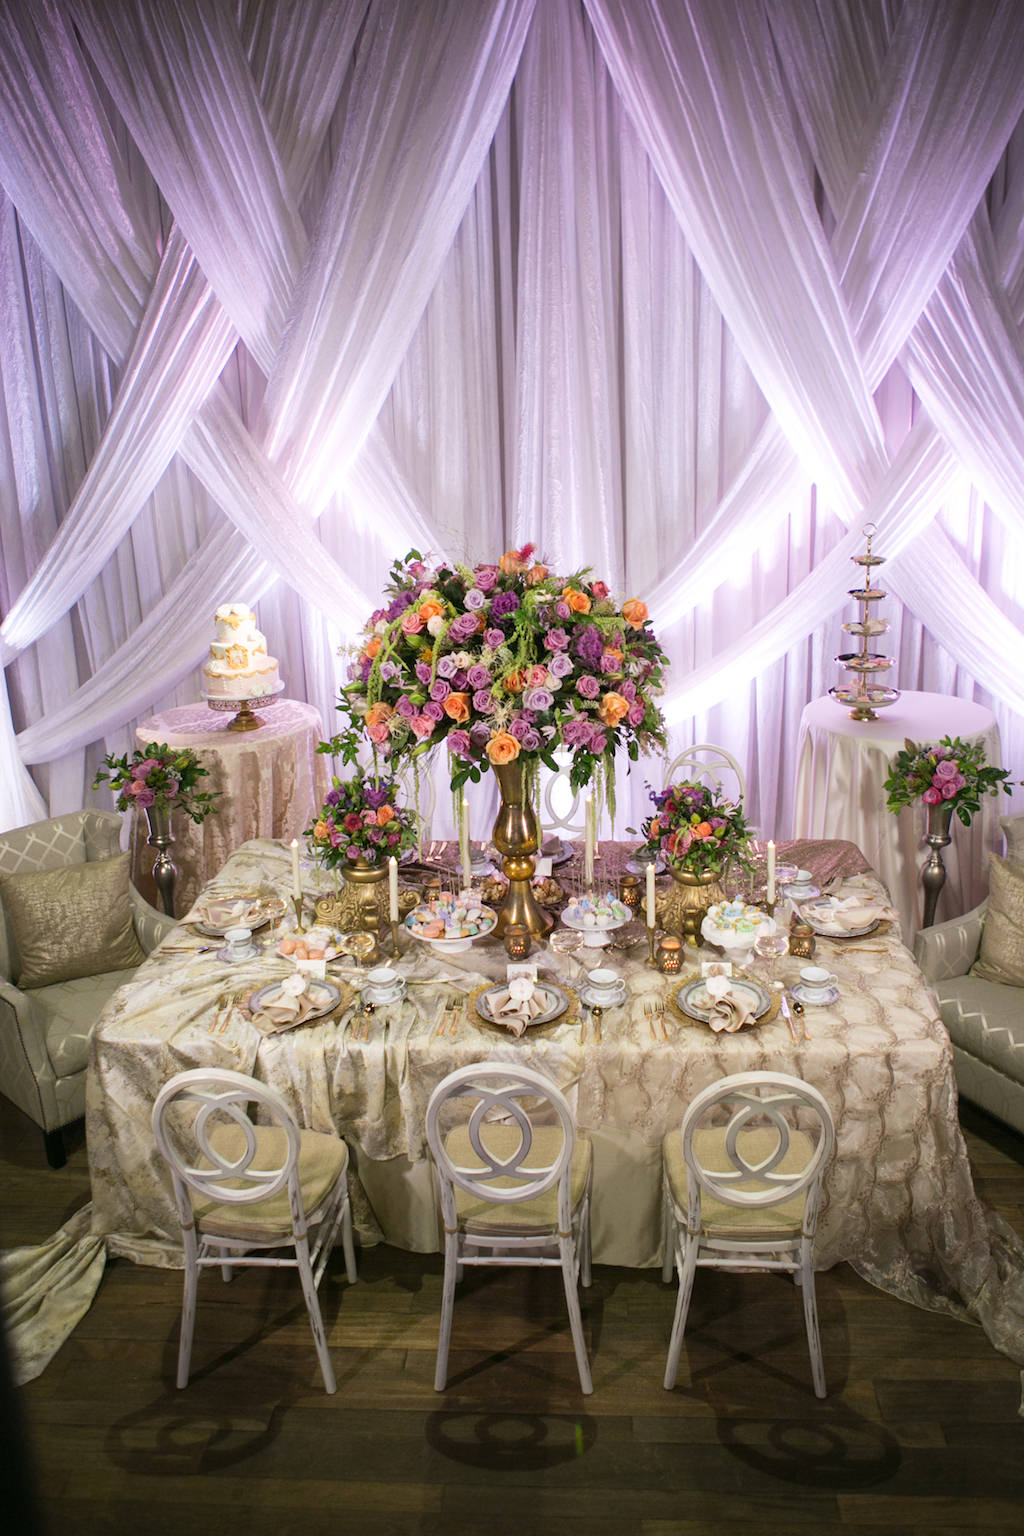 Modern Wedding Reception with Unique Vintage Inspired Furniture and Linens, Tropical Orange, Pink, and Purple Rose with Greenery Centerpieces in Tall Gold Vases, and Drapery with Purple Uplighting | St. Petersburg Wedding Venue NOVA 535 | Planner UNIQUE Weddings and Events | Photographer Carrie Wildes Photography